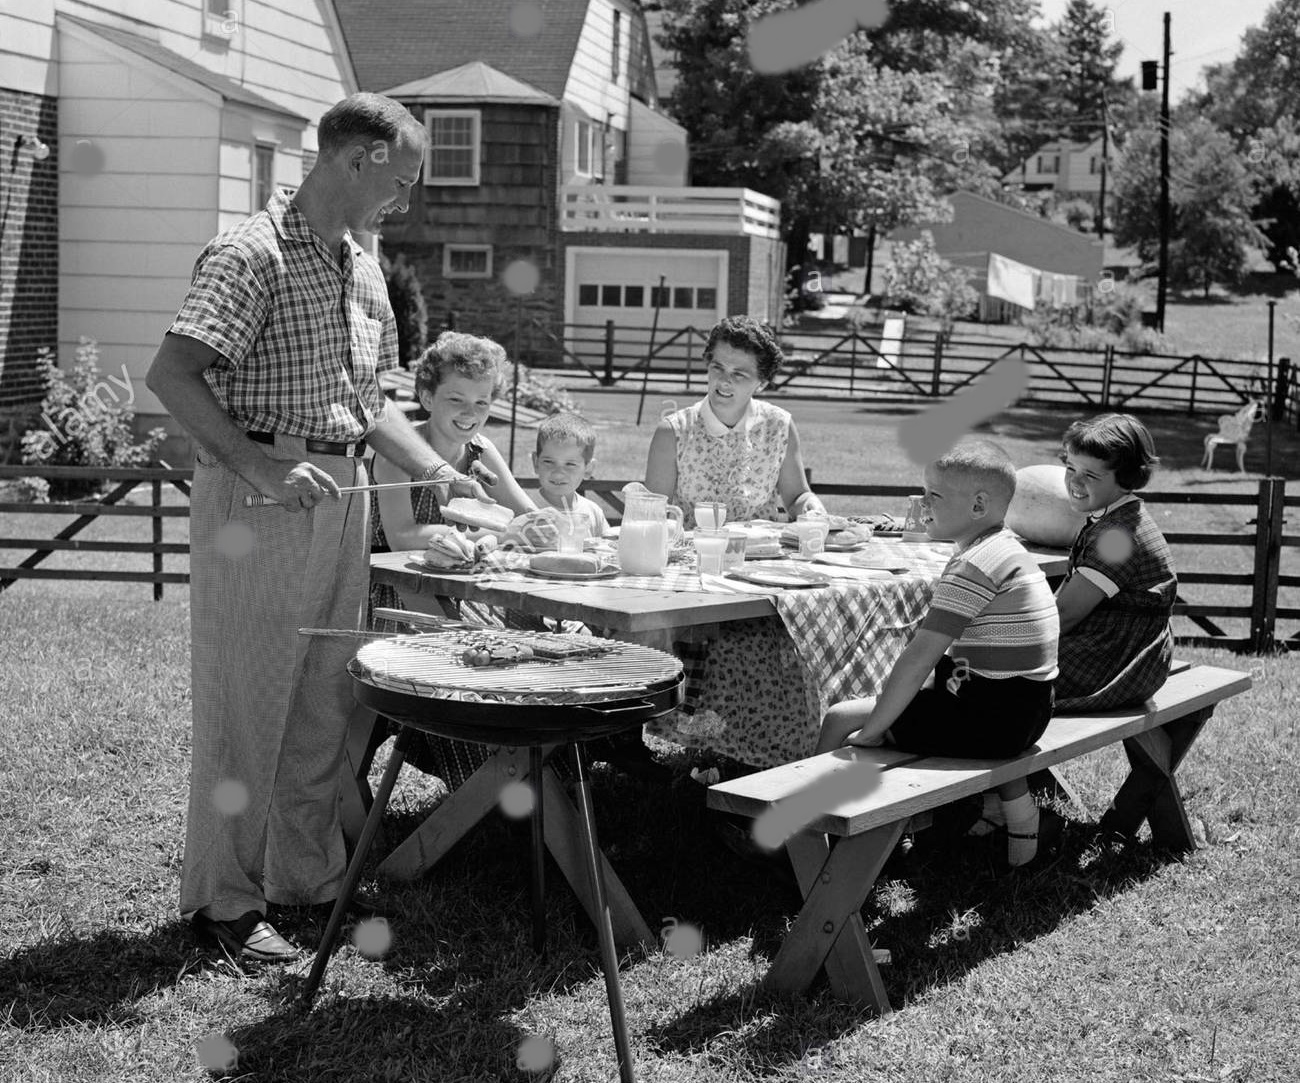 1950s-family-in-backyard-cooking-hot-dogs-sitting-at-picnic-table-AAKTPY